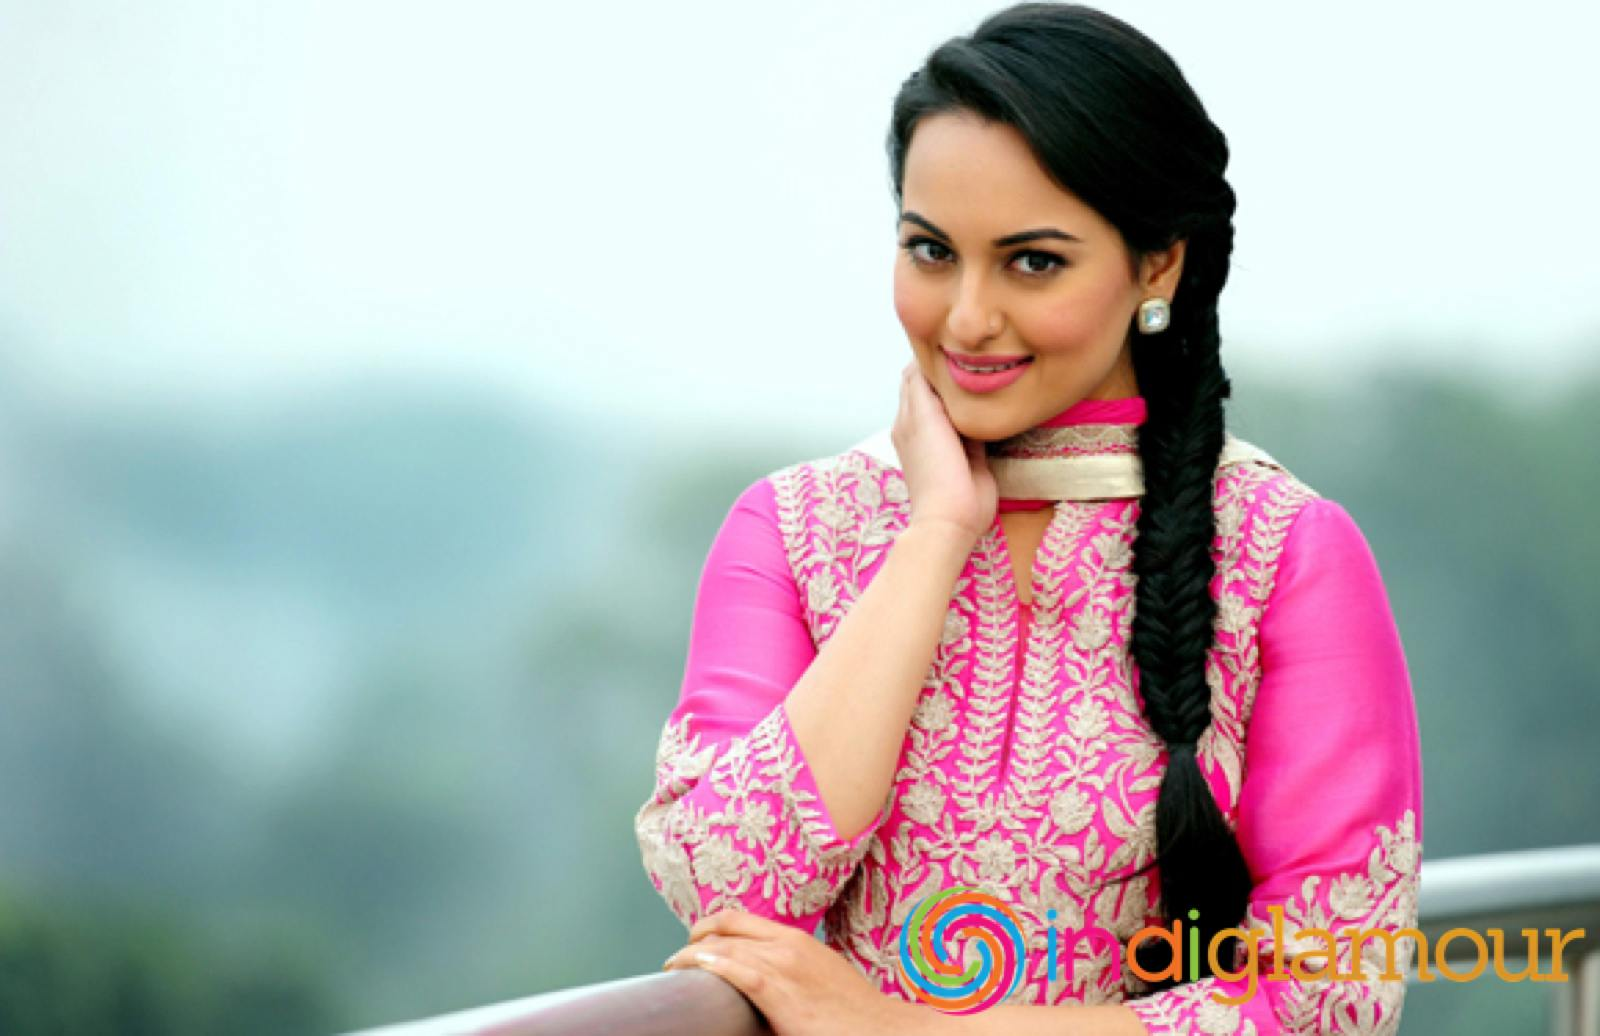 Sonakshi Sinha Wallpapers Celebrity Hq Sonakshi Sinha Pictures 4k Wallpapers 2019